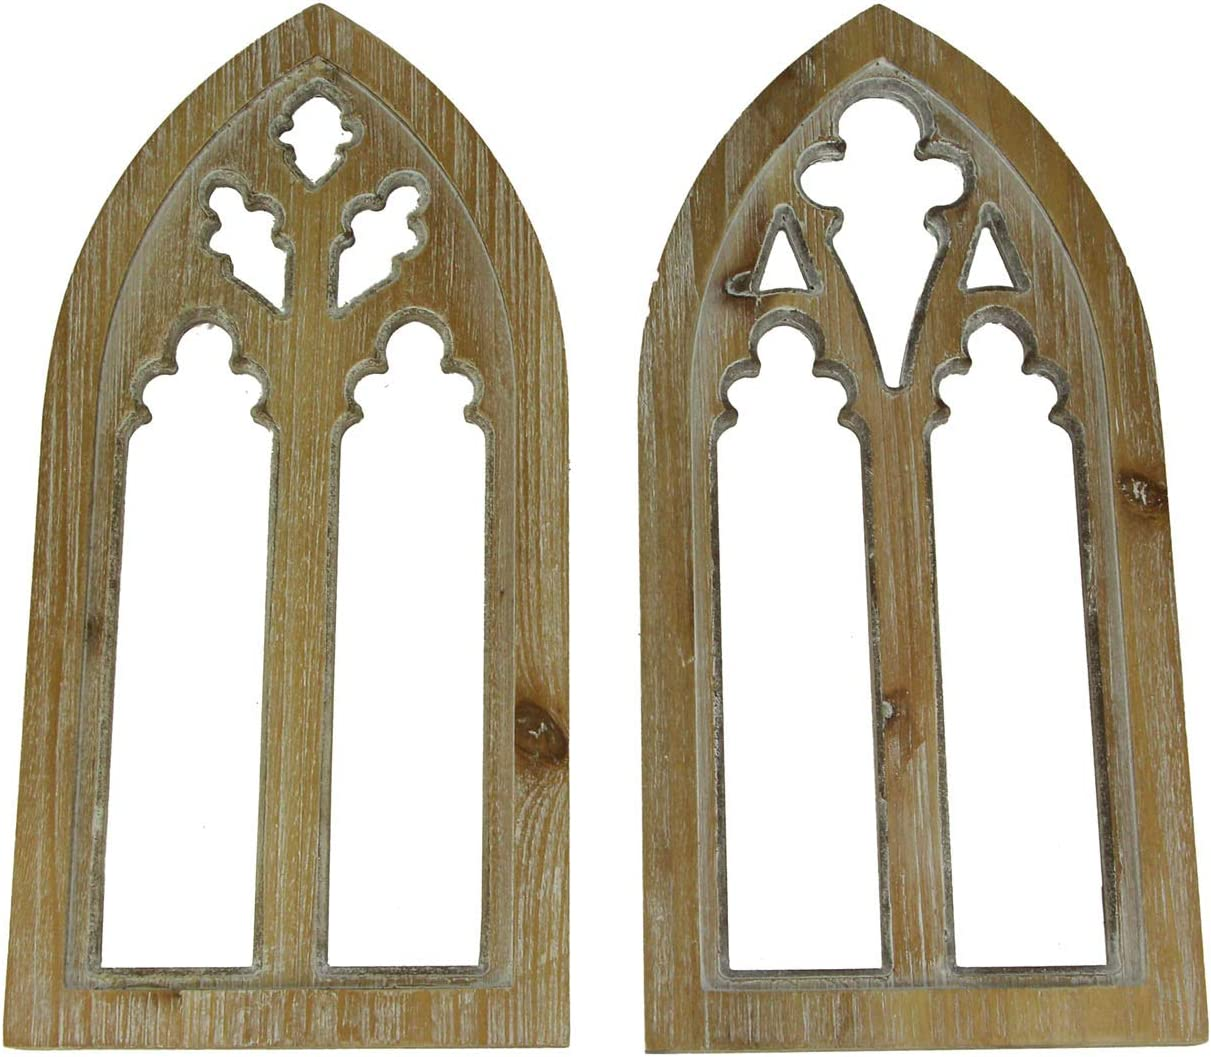 PD Home & Garden Whitewashed Wood Gothic Arch Window Frame Wall Decor 2 Piece Set